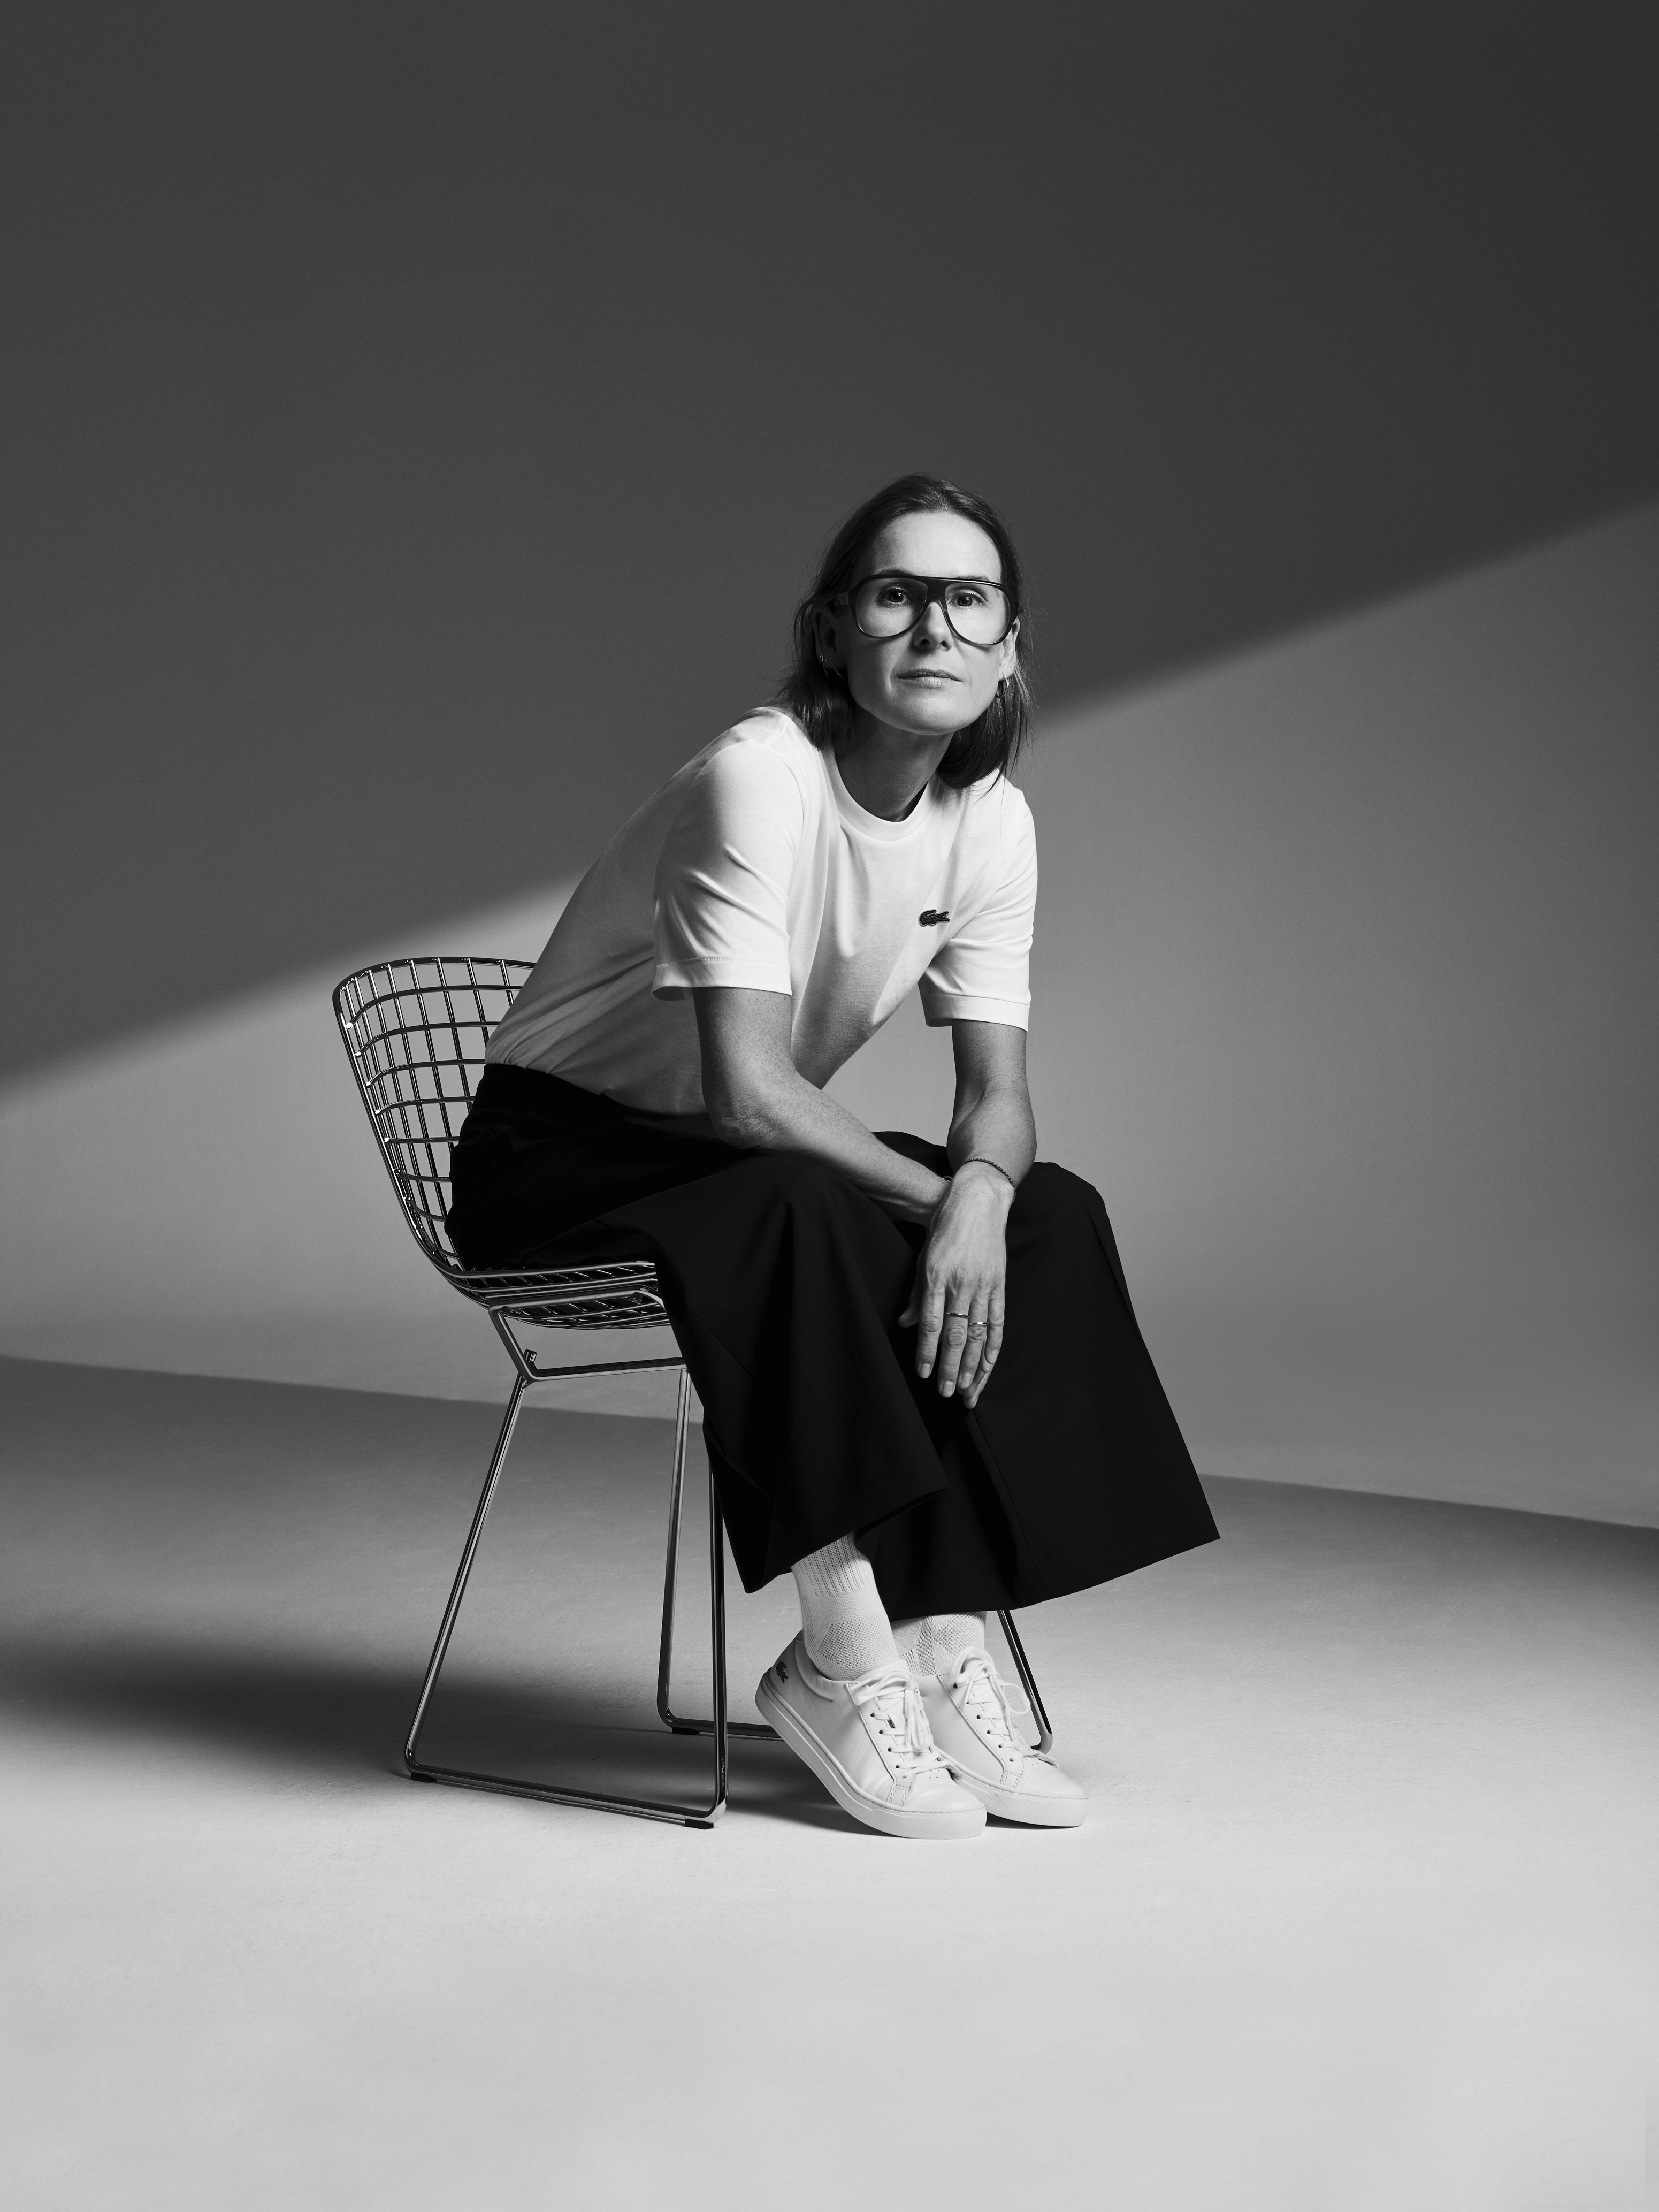 Louise_Trotter©Lacoste_Cyril_Masson